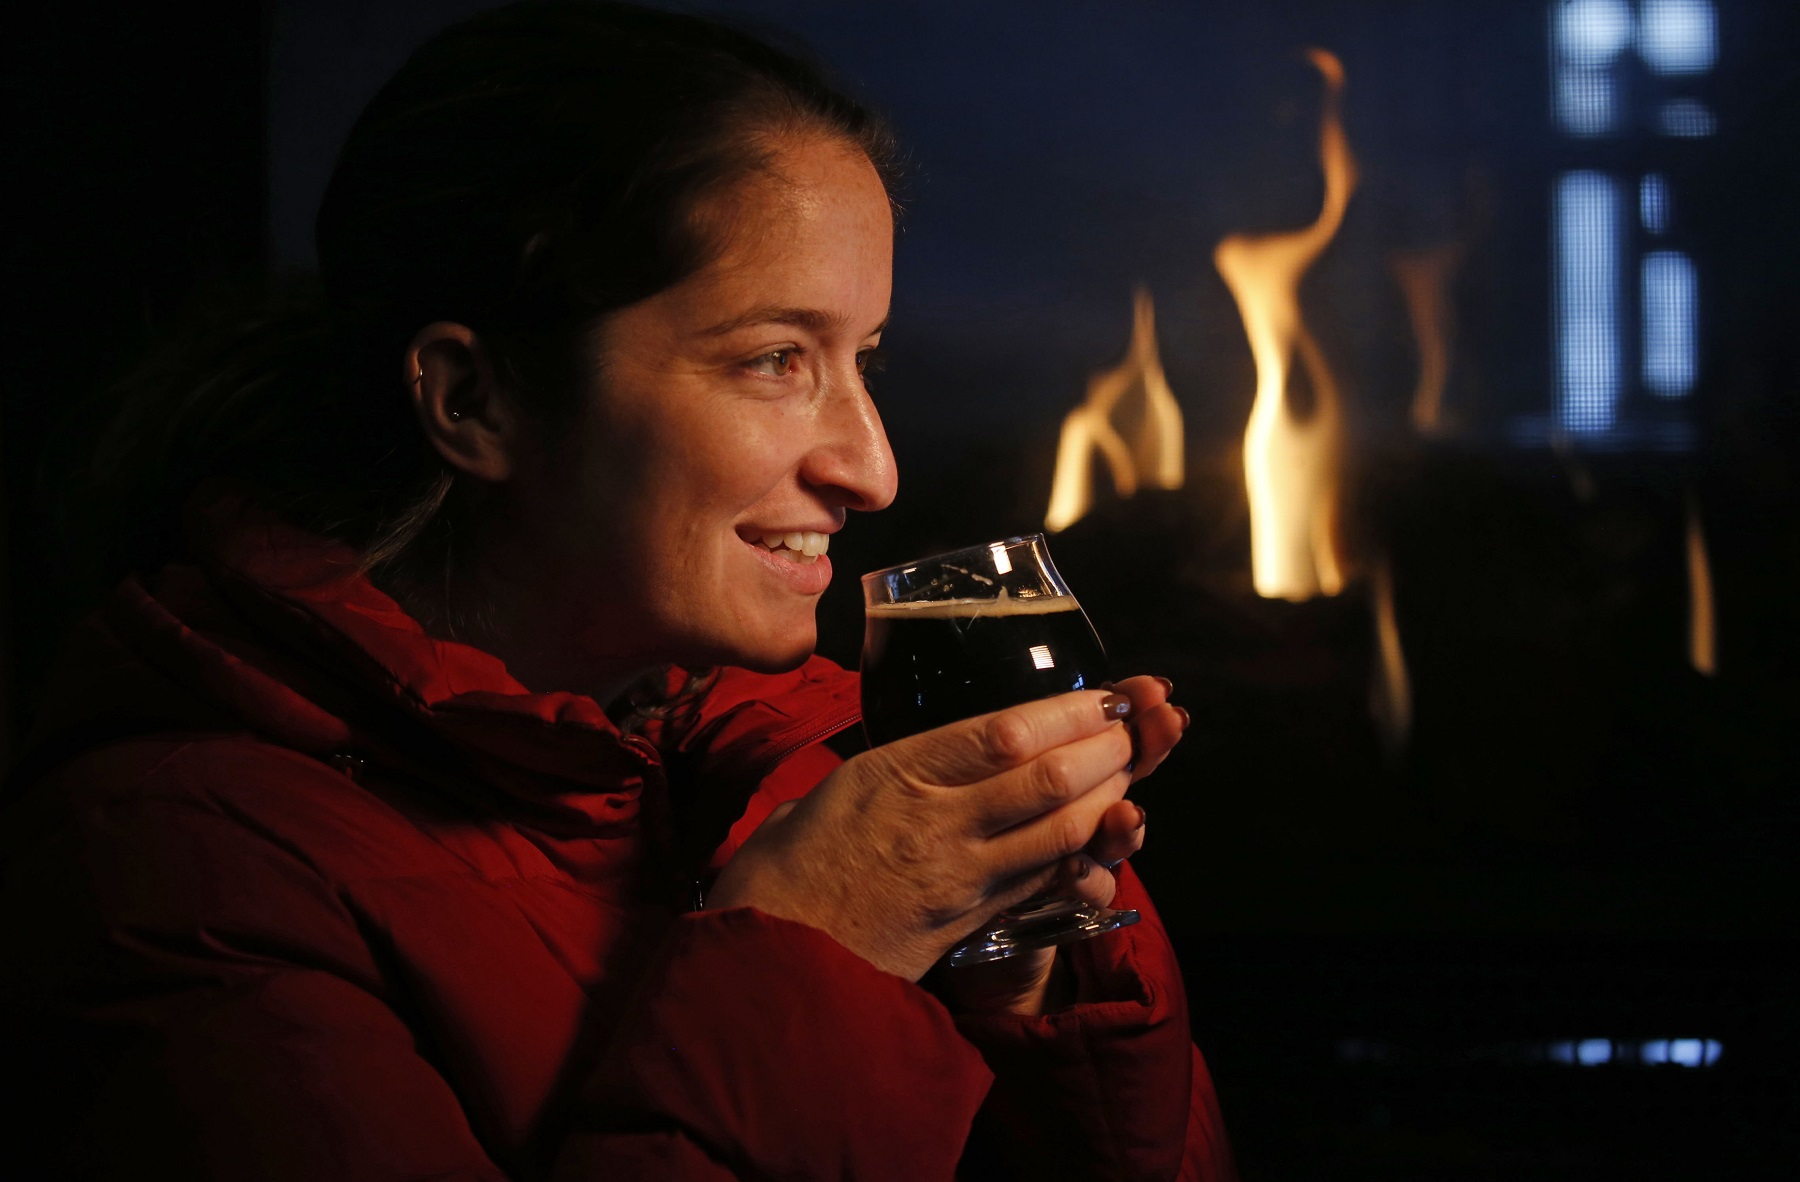 7 Hot Spots To Grab A Beer And Warm Your Bones By The Fireplace photo